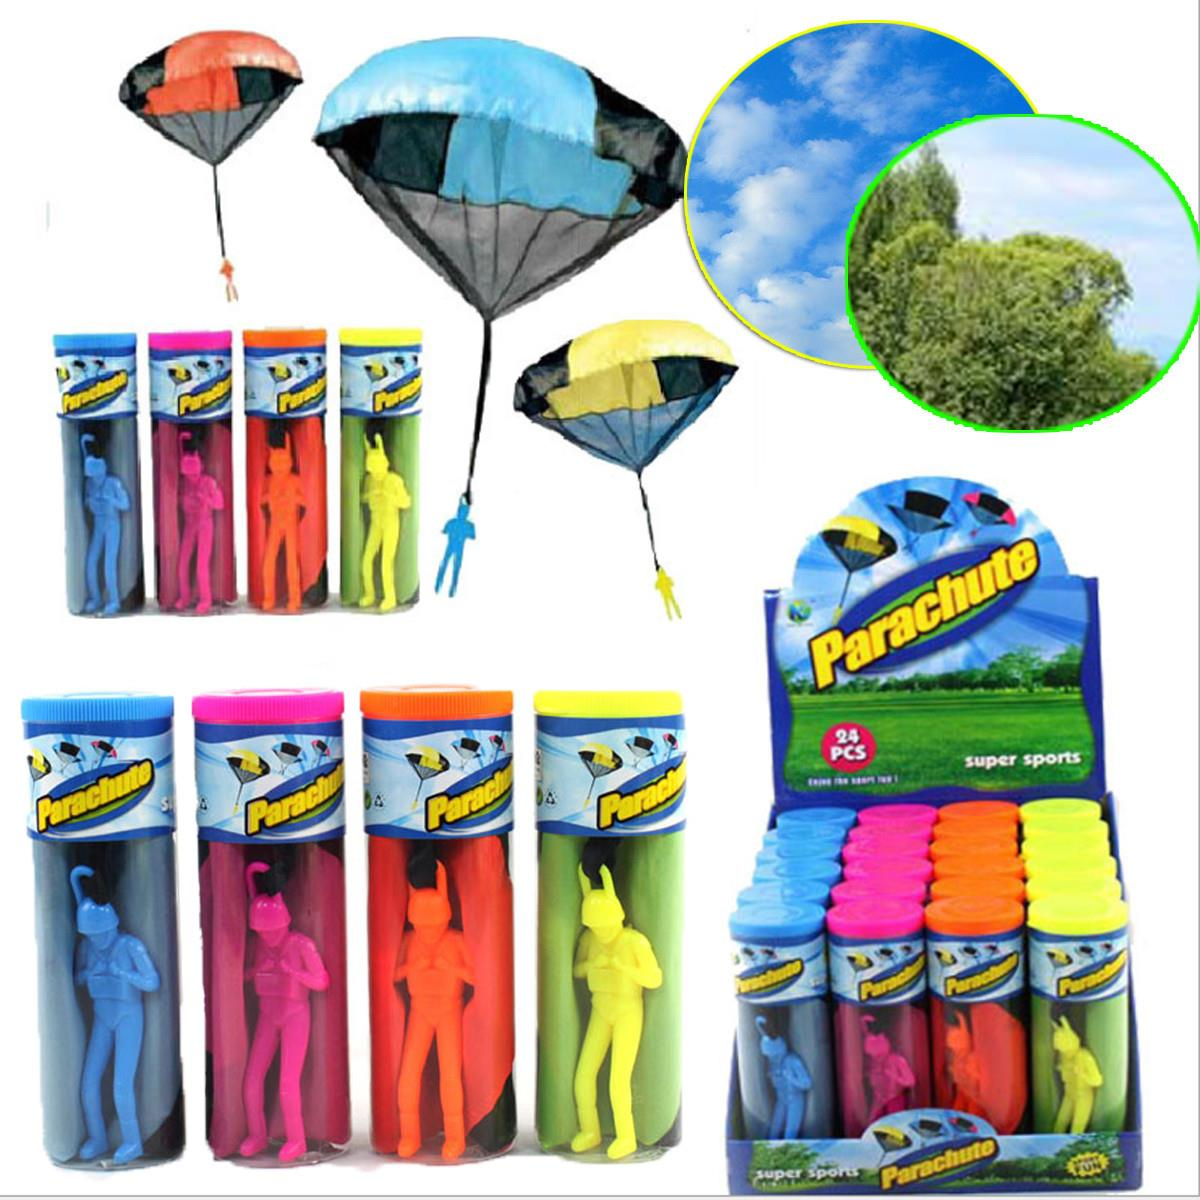 Kites & Accessories Conscientious Jimitu Hand Throwing Parachutes Kite Kids Mini Play Parachute Soldier Toy Childrens Educational Toys Kites Free Shipping Attractive Designs; Outdoor Fun & Sports